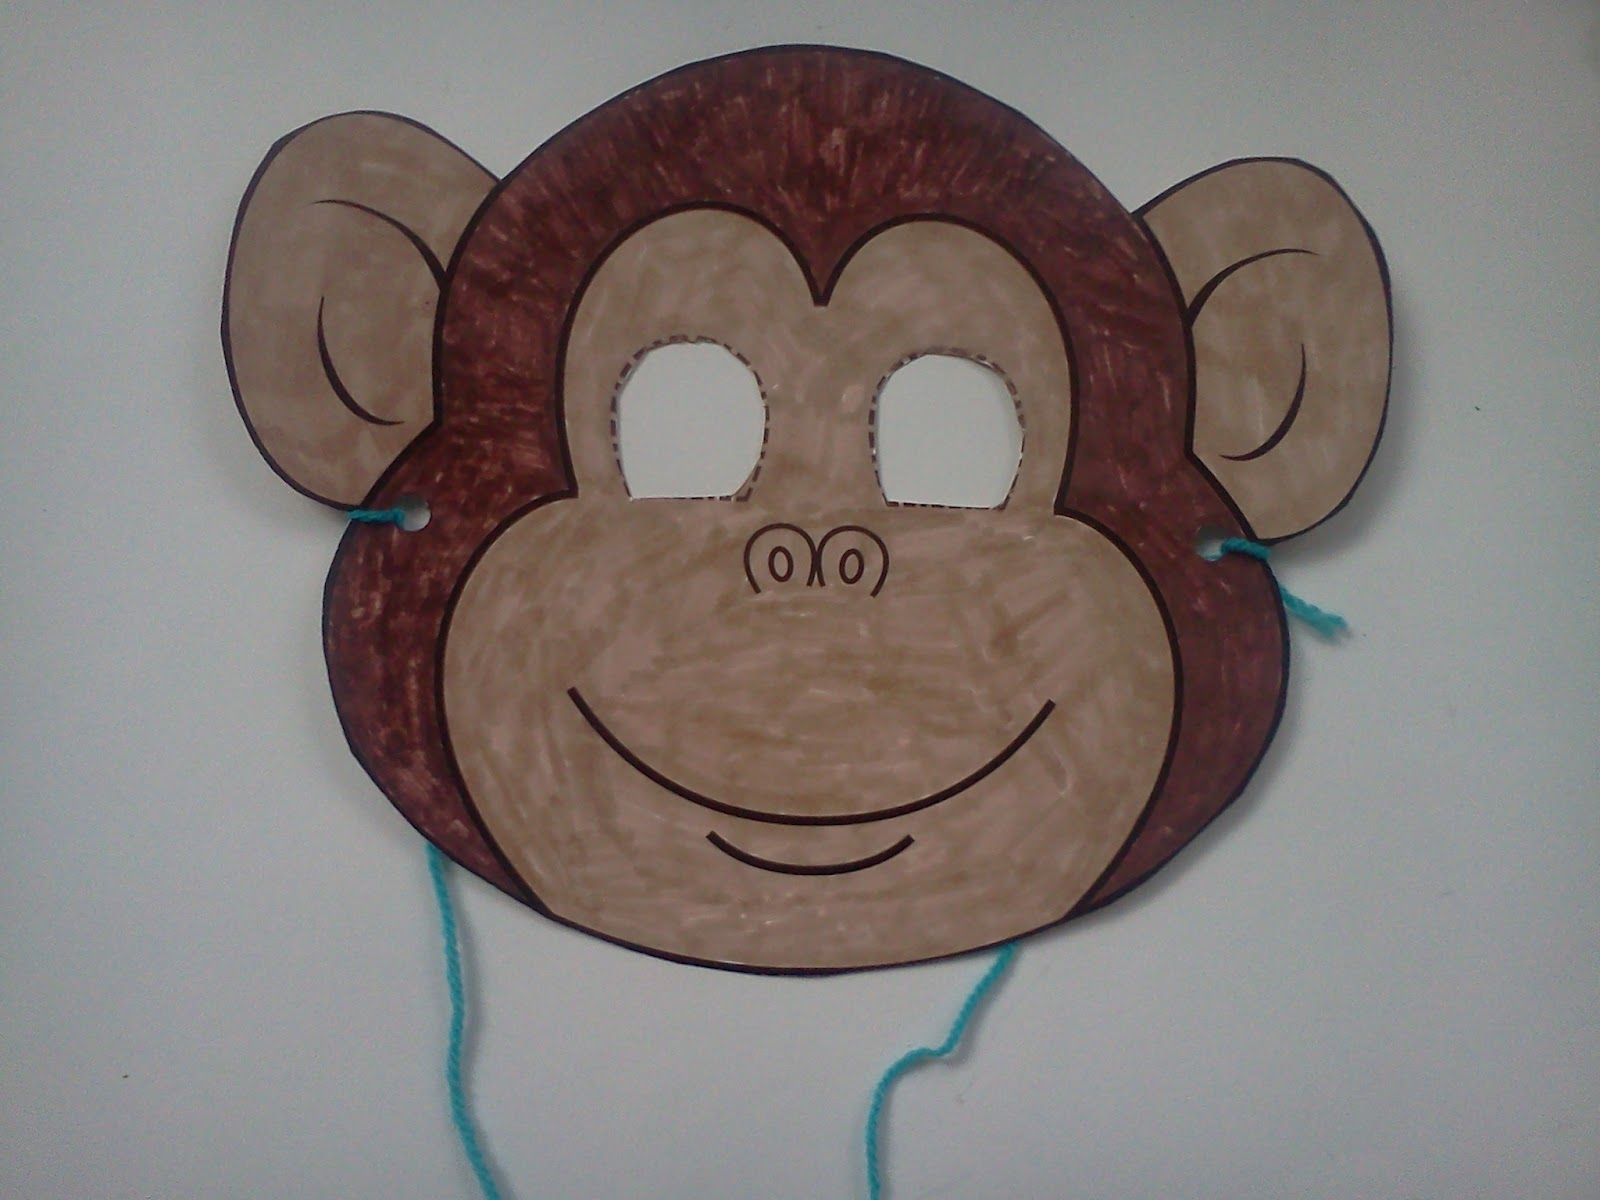 Tuesday May 29 2012 & The Weekly Craft: Monkey Mask